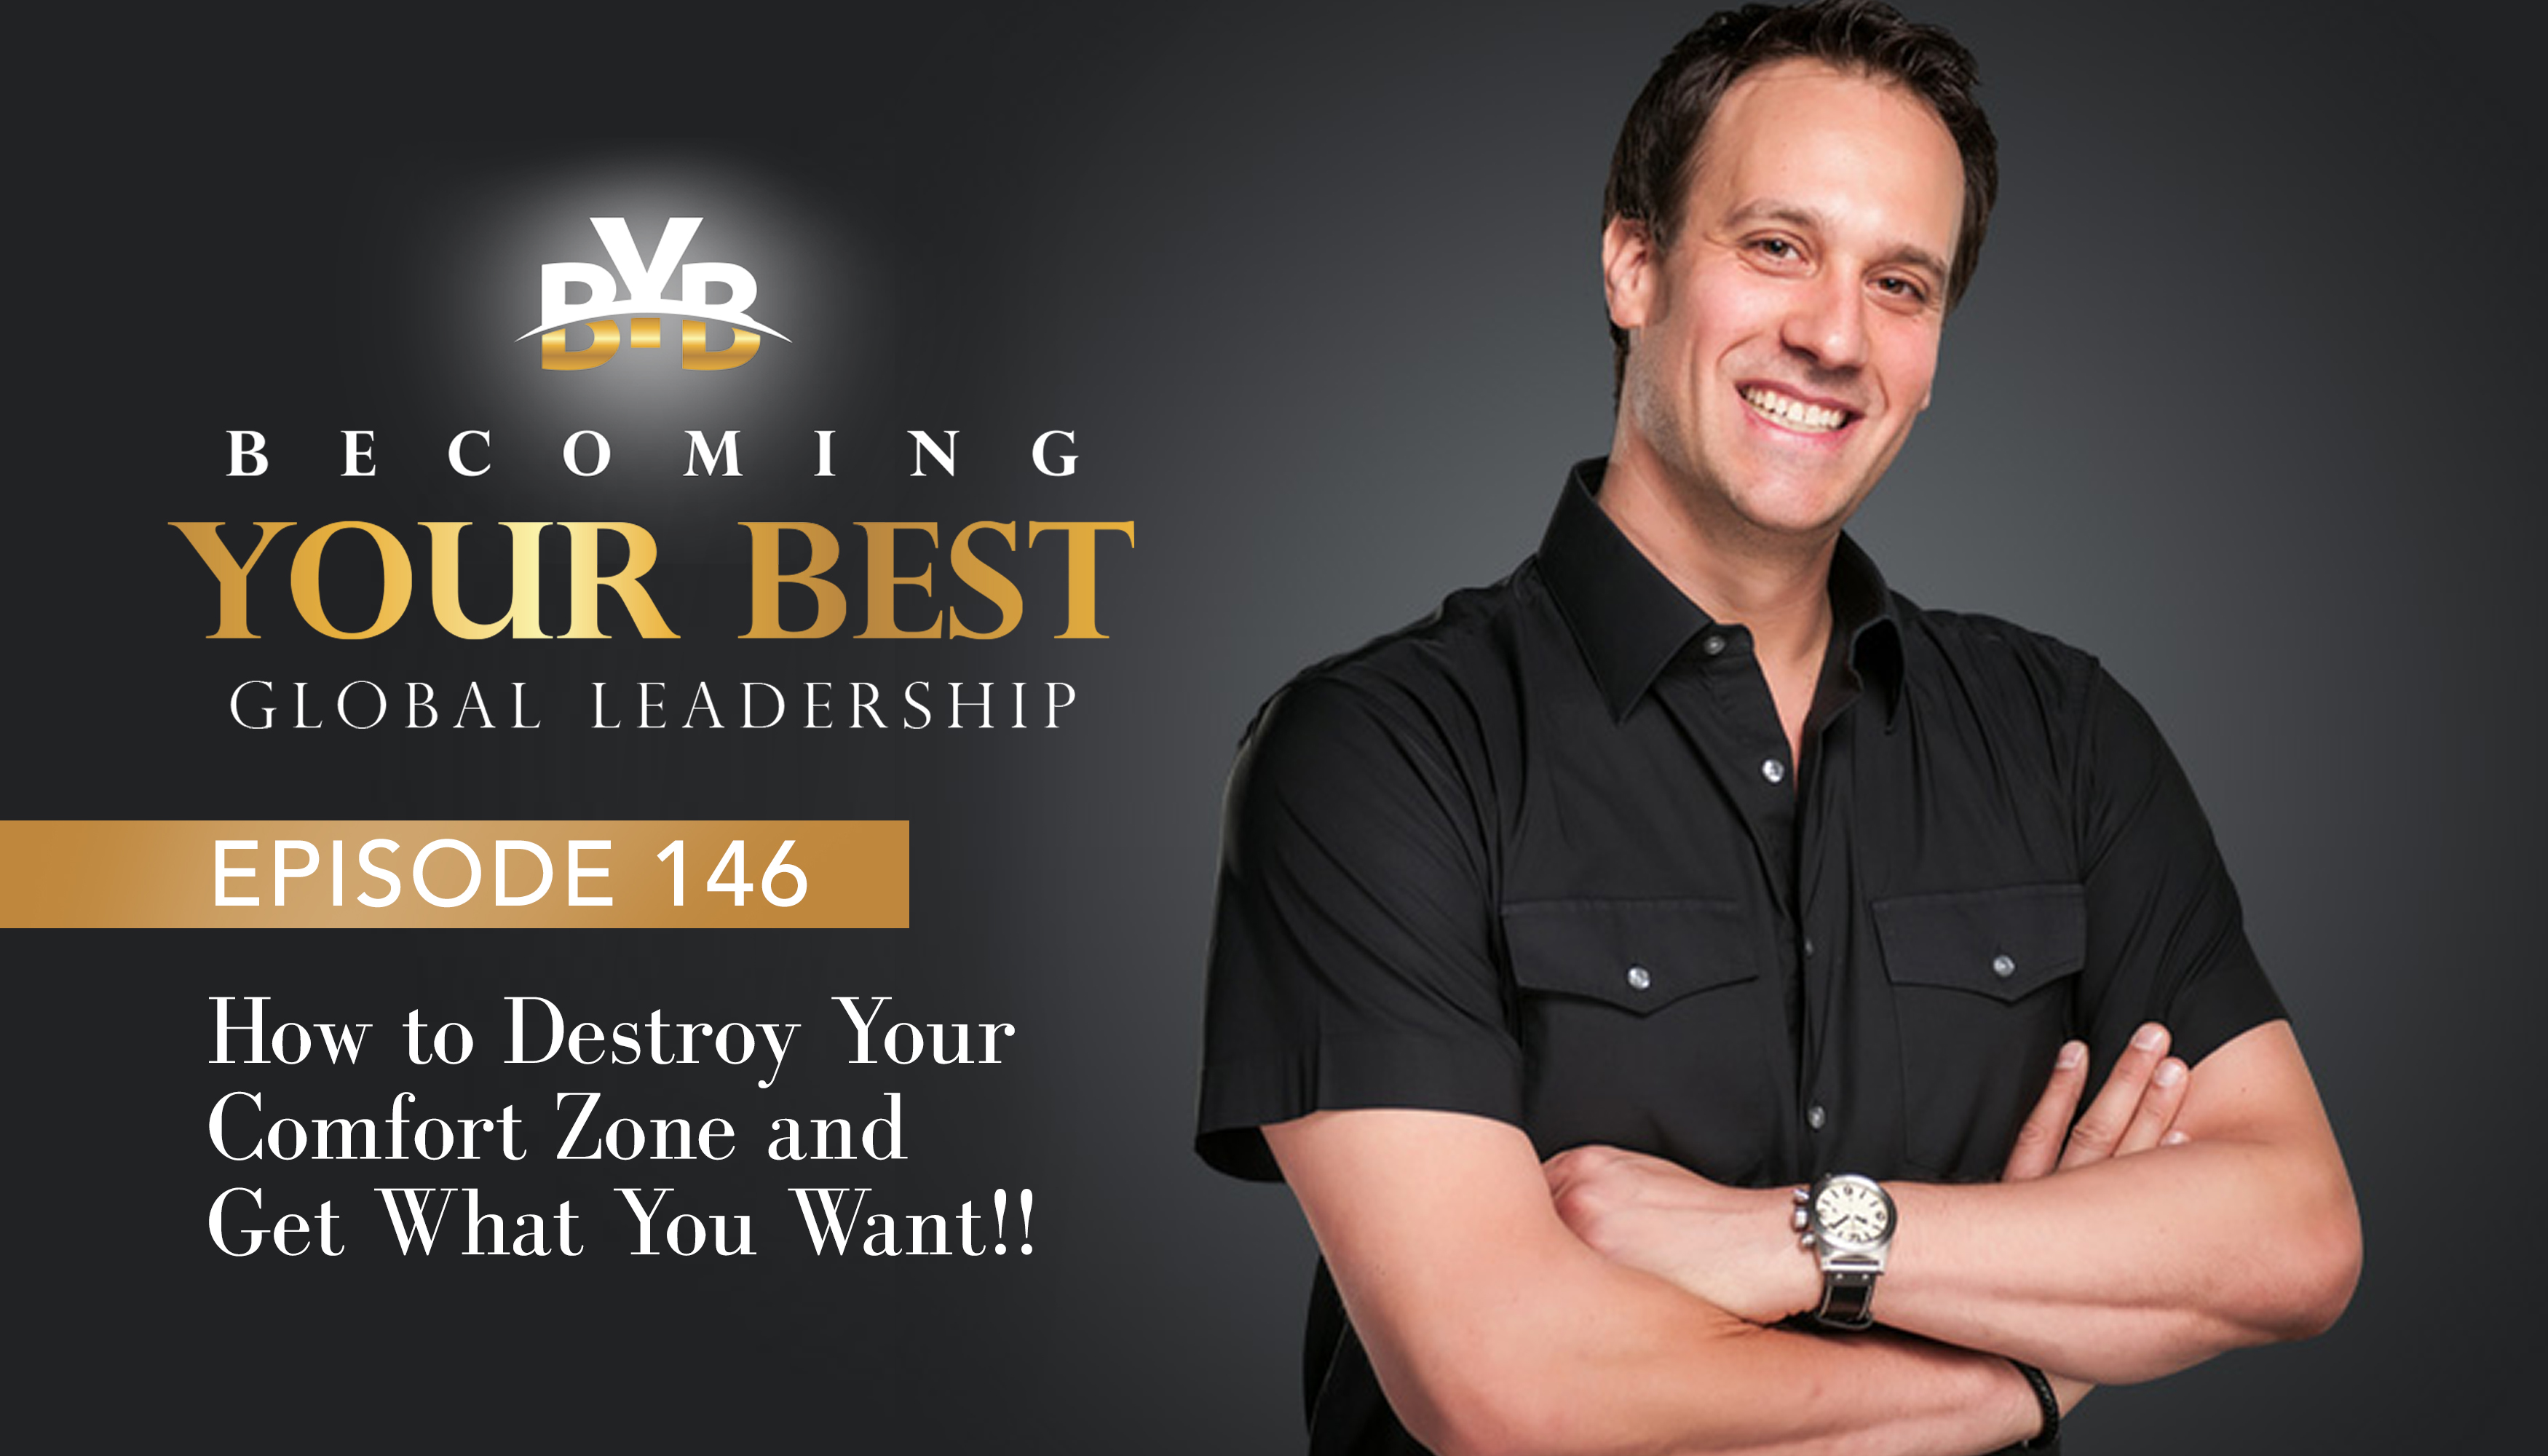 Episode 146 – How to Destroy Your Comfort Zone & Get What You Want!